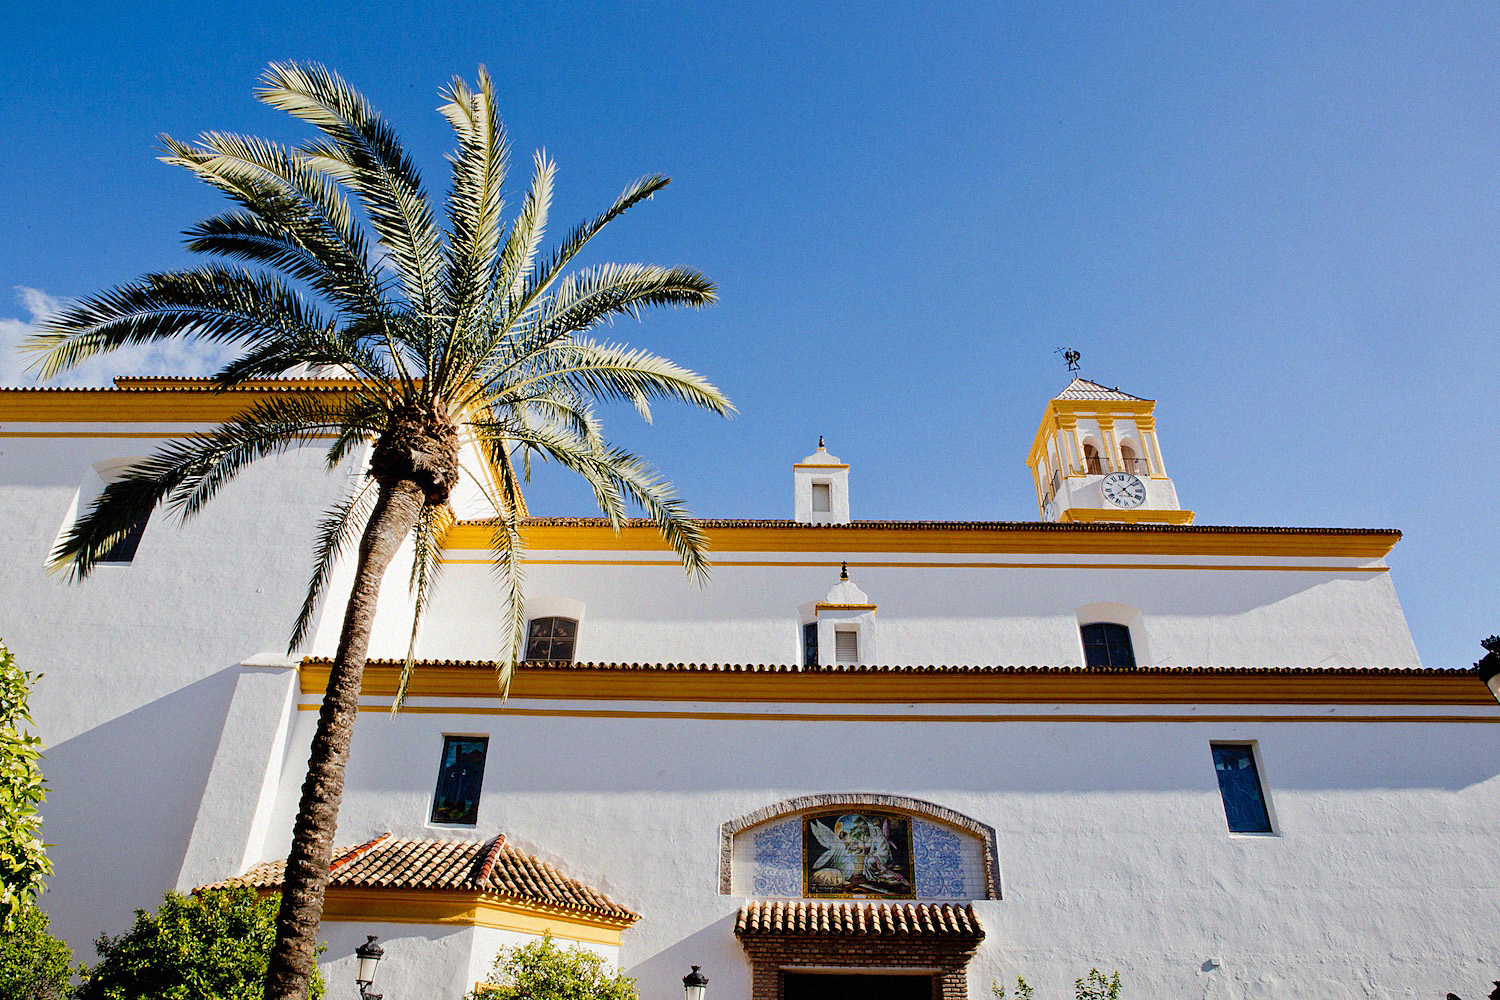 marbella old town amare marbella beach hotel activities in marbella eating in marbella